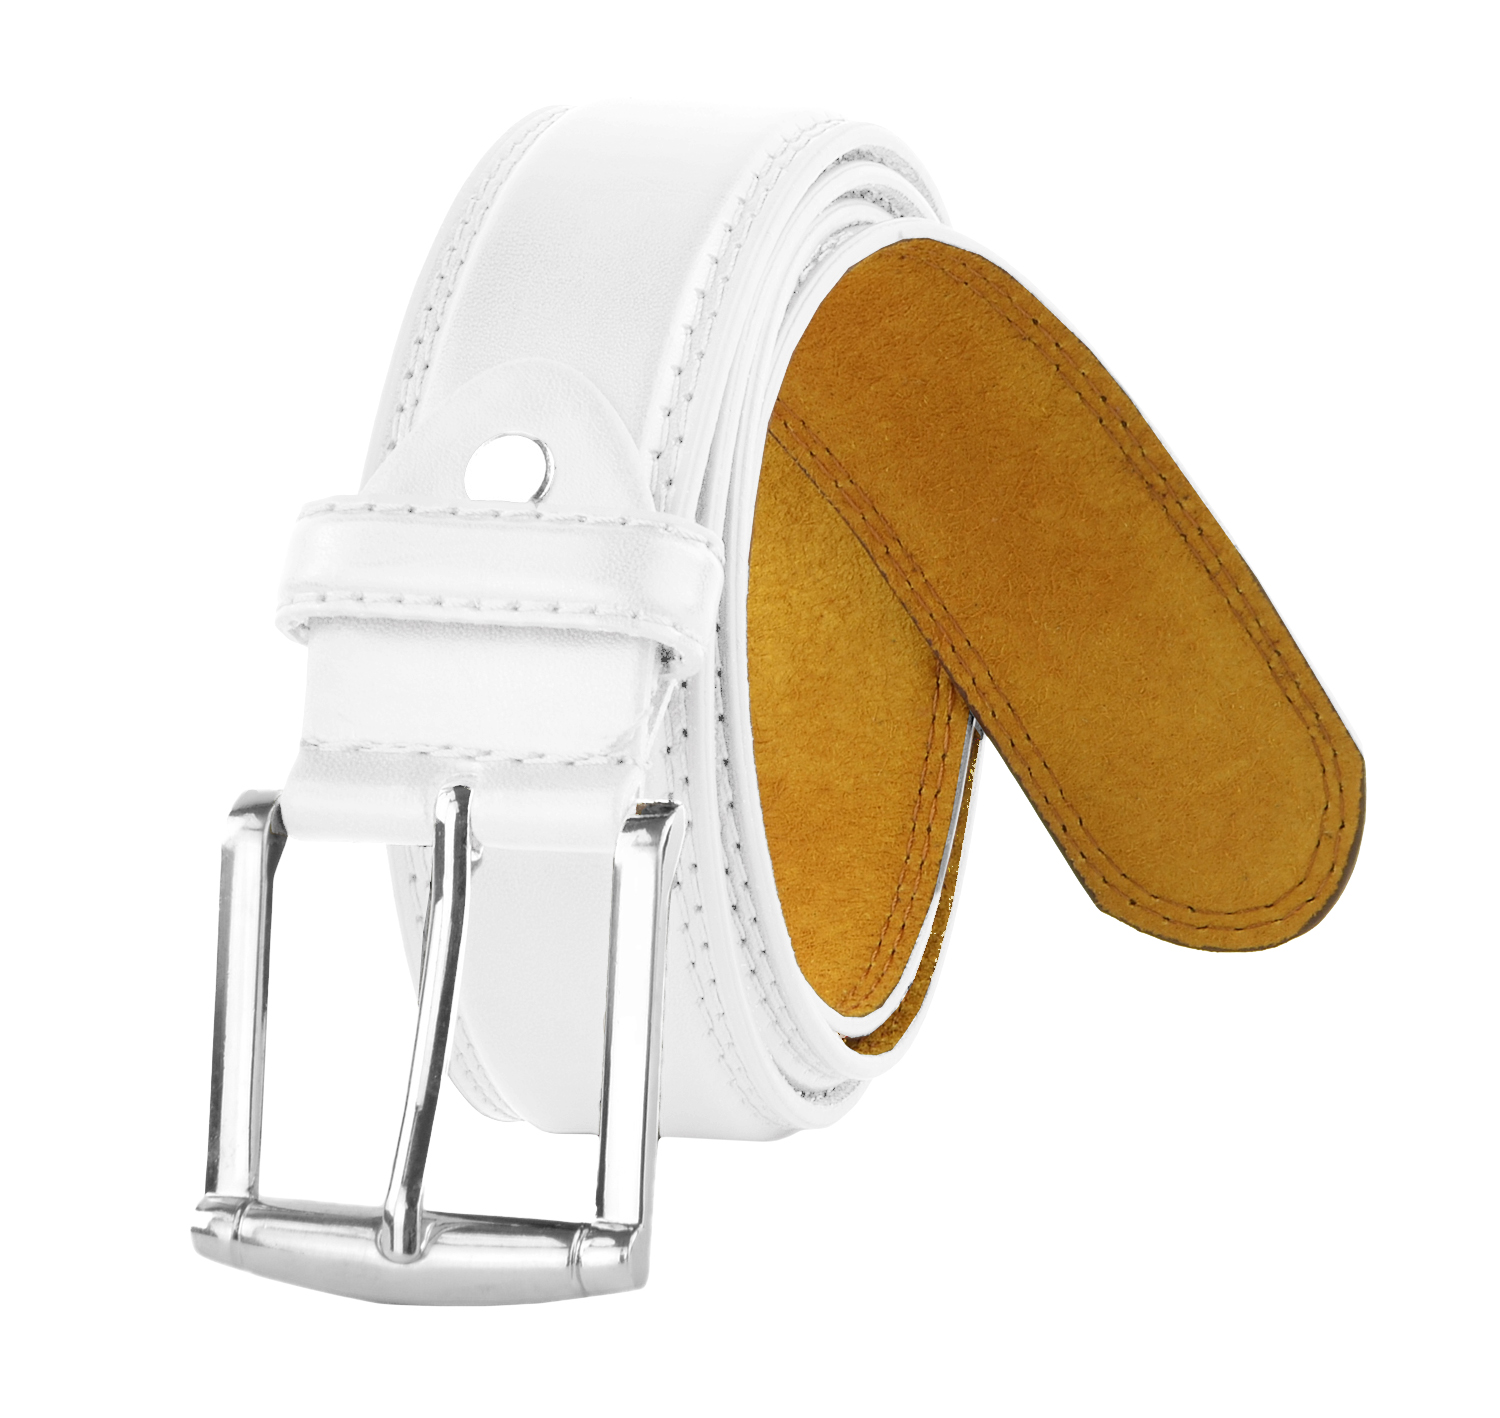 Moda Di Raza - Men's Classic Leather Belt - 1.5 Inch Width - Square Silver Polished Belt Buckle - Formal Casual Dress Belt - PU Bonded Leather - White